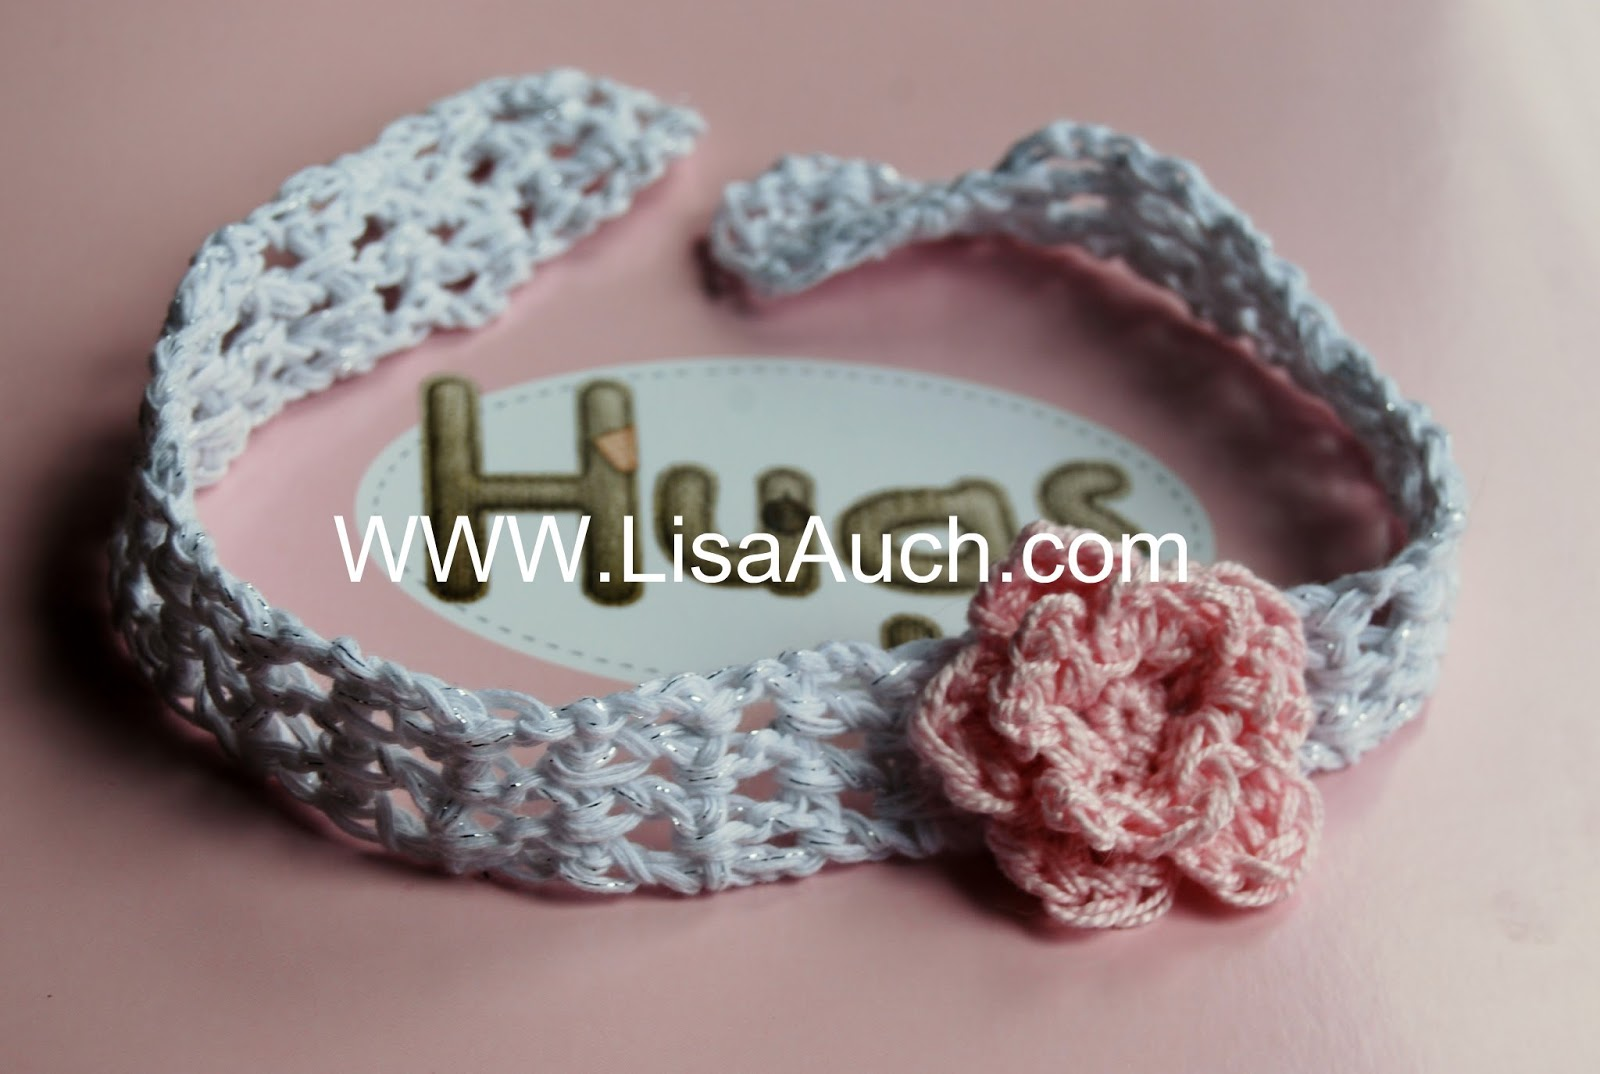 Free Patterns To Crochet Baby Headbands : Crochet Headband Patterns For Babies submited images.